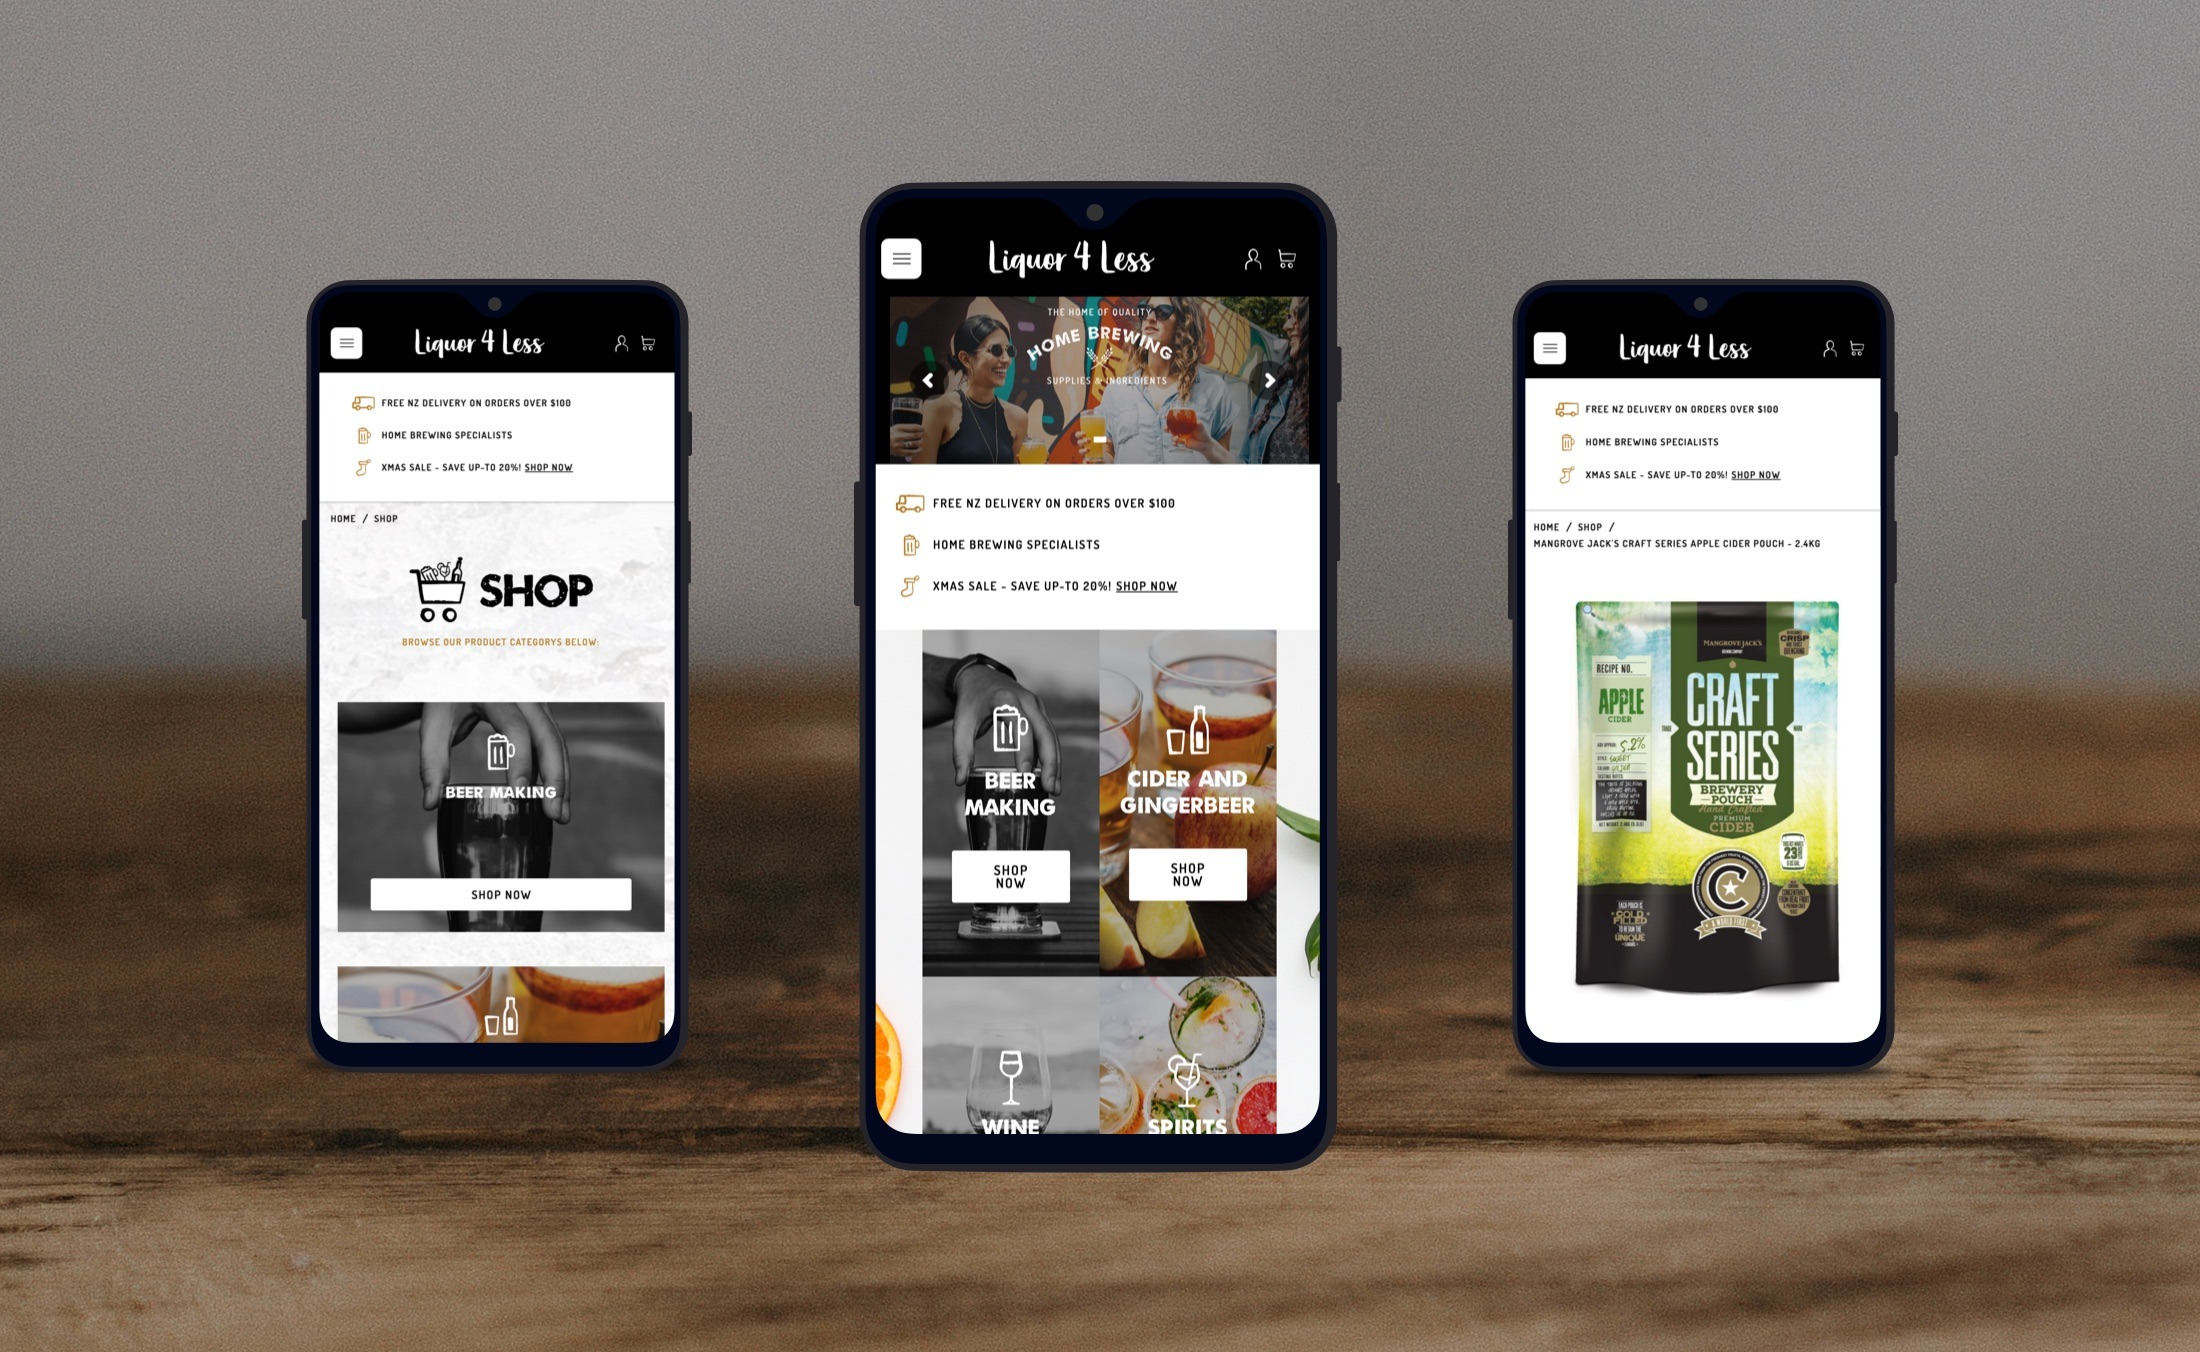 Mobile Friendly - Liquor 4 Less